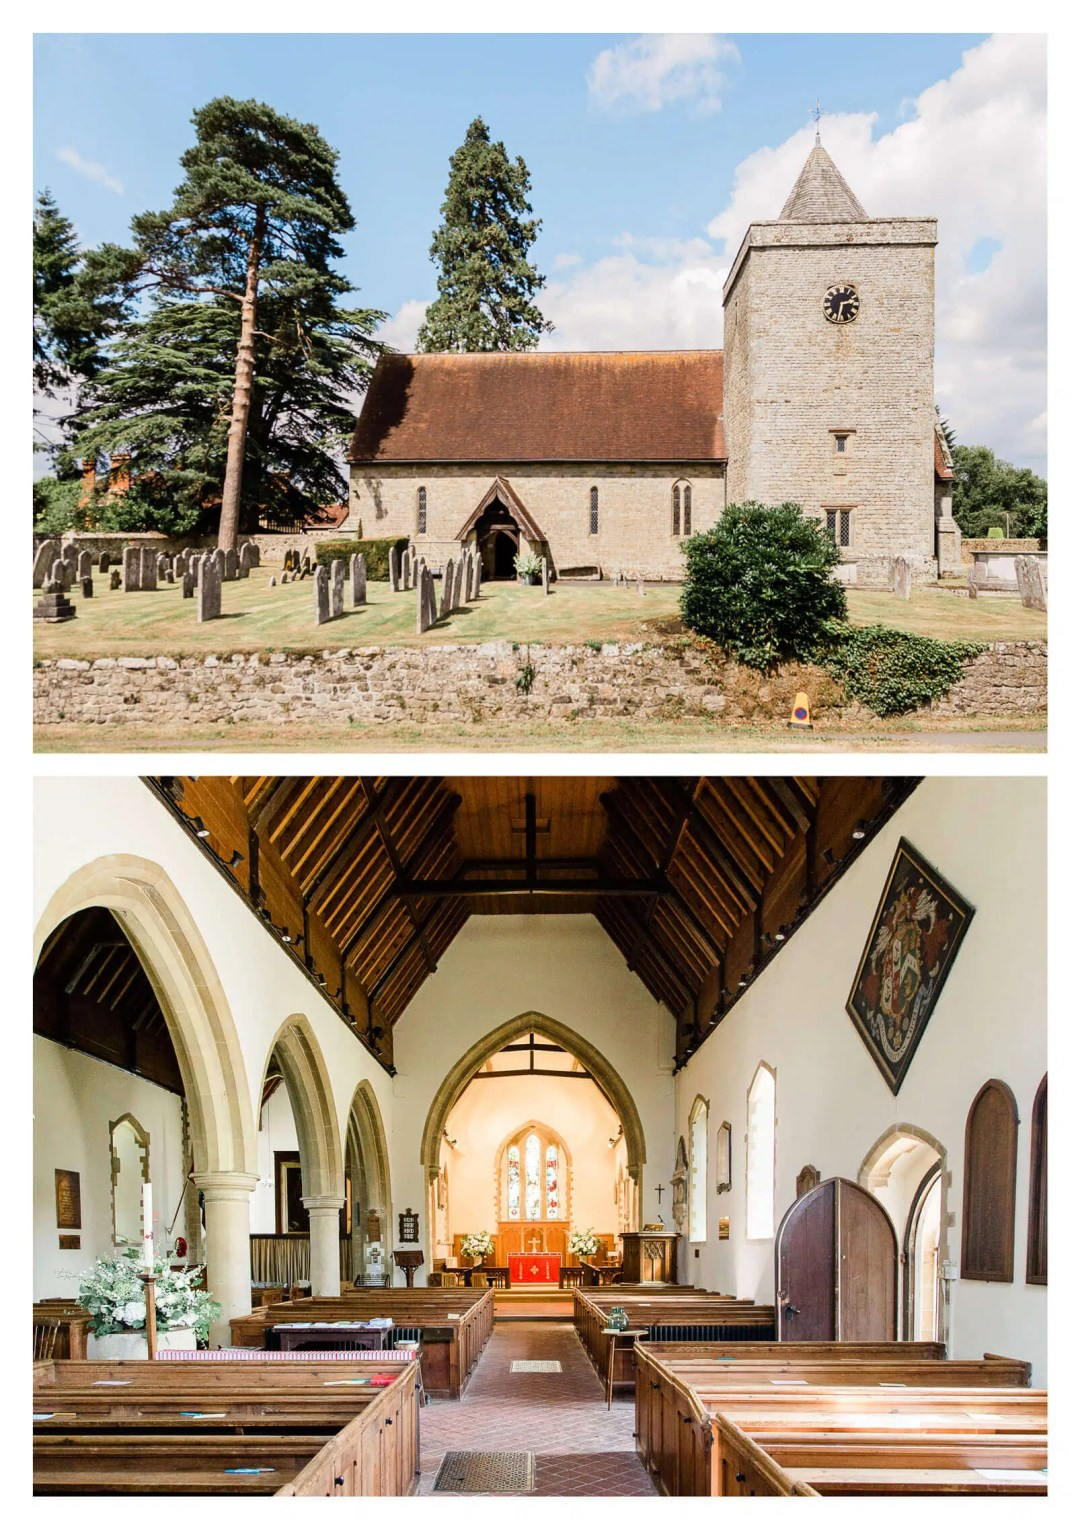 St James Church wedding venue in Stedham | West Sussex Wedding Photographer